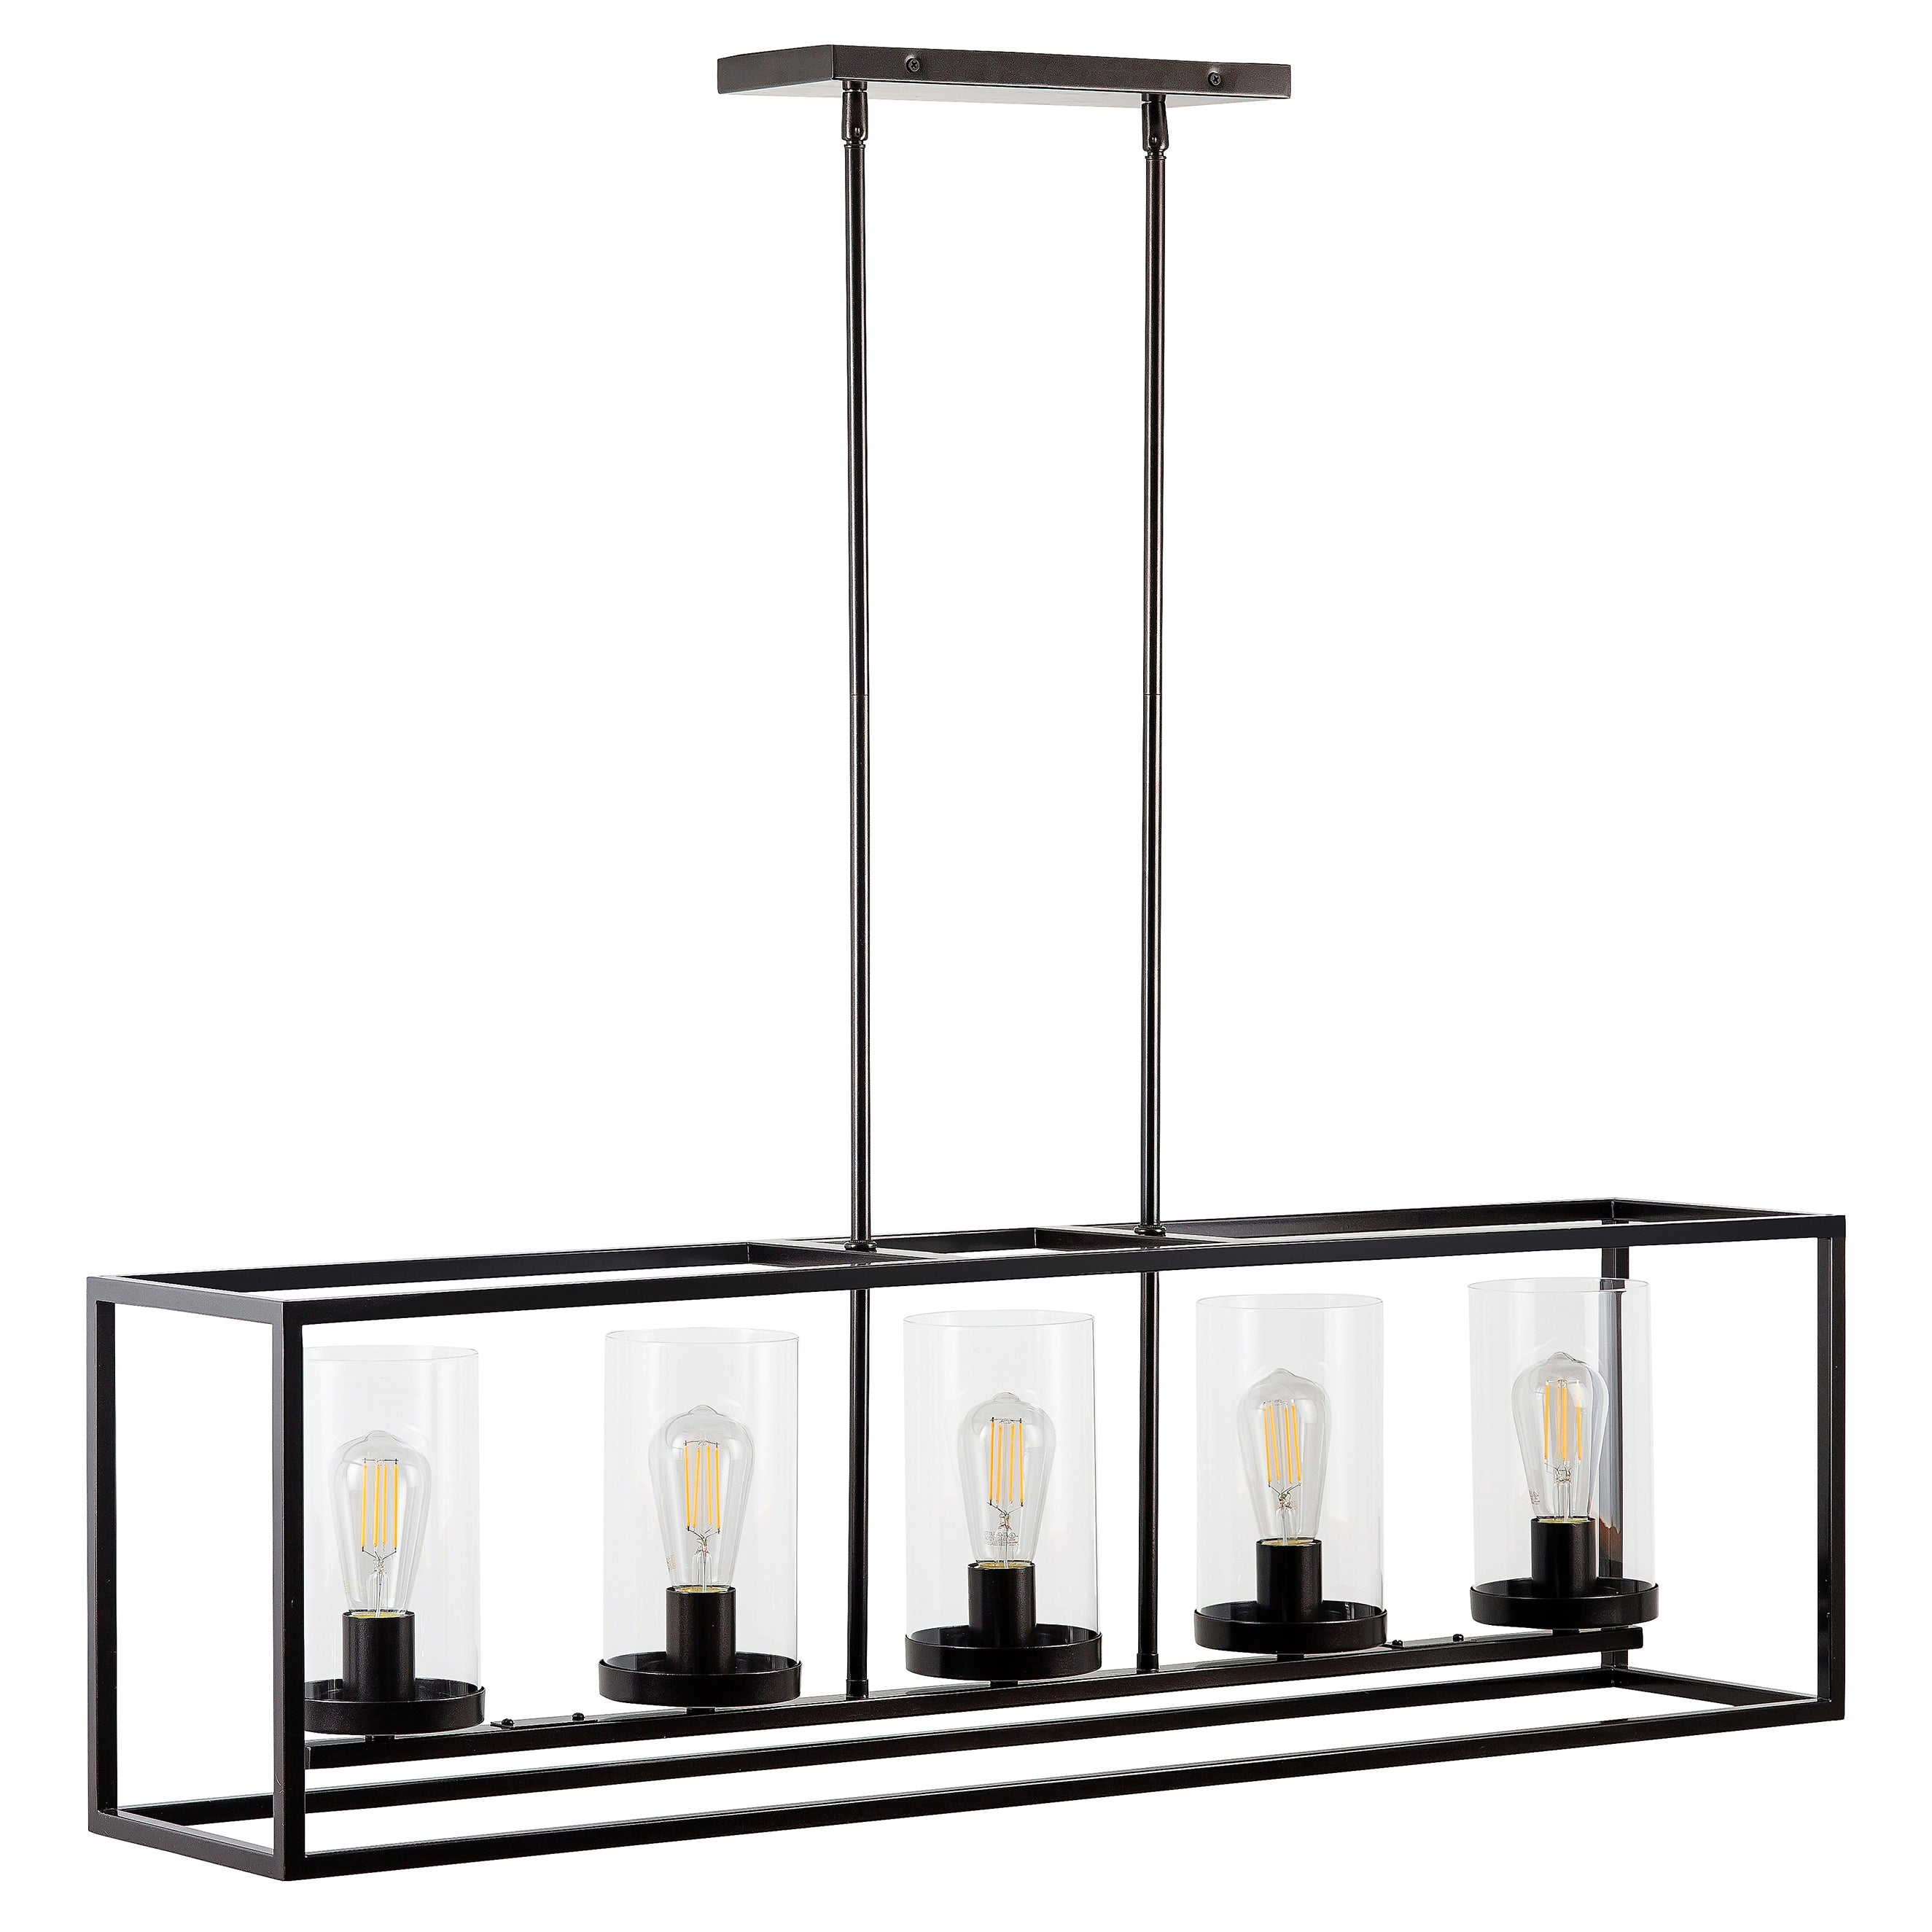 Verona 5 Light Box Pendant Chandelier - Dark Bronze - LED bulbs included